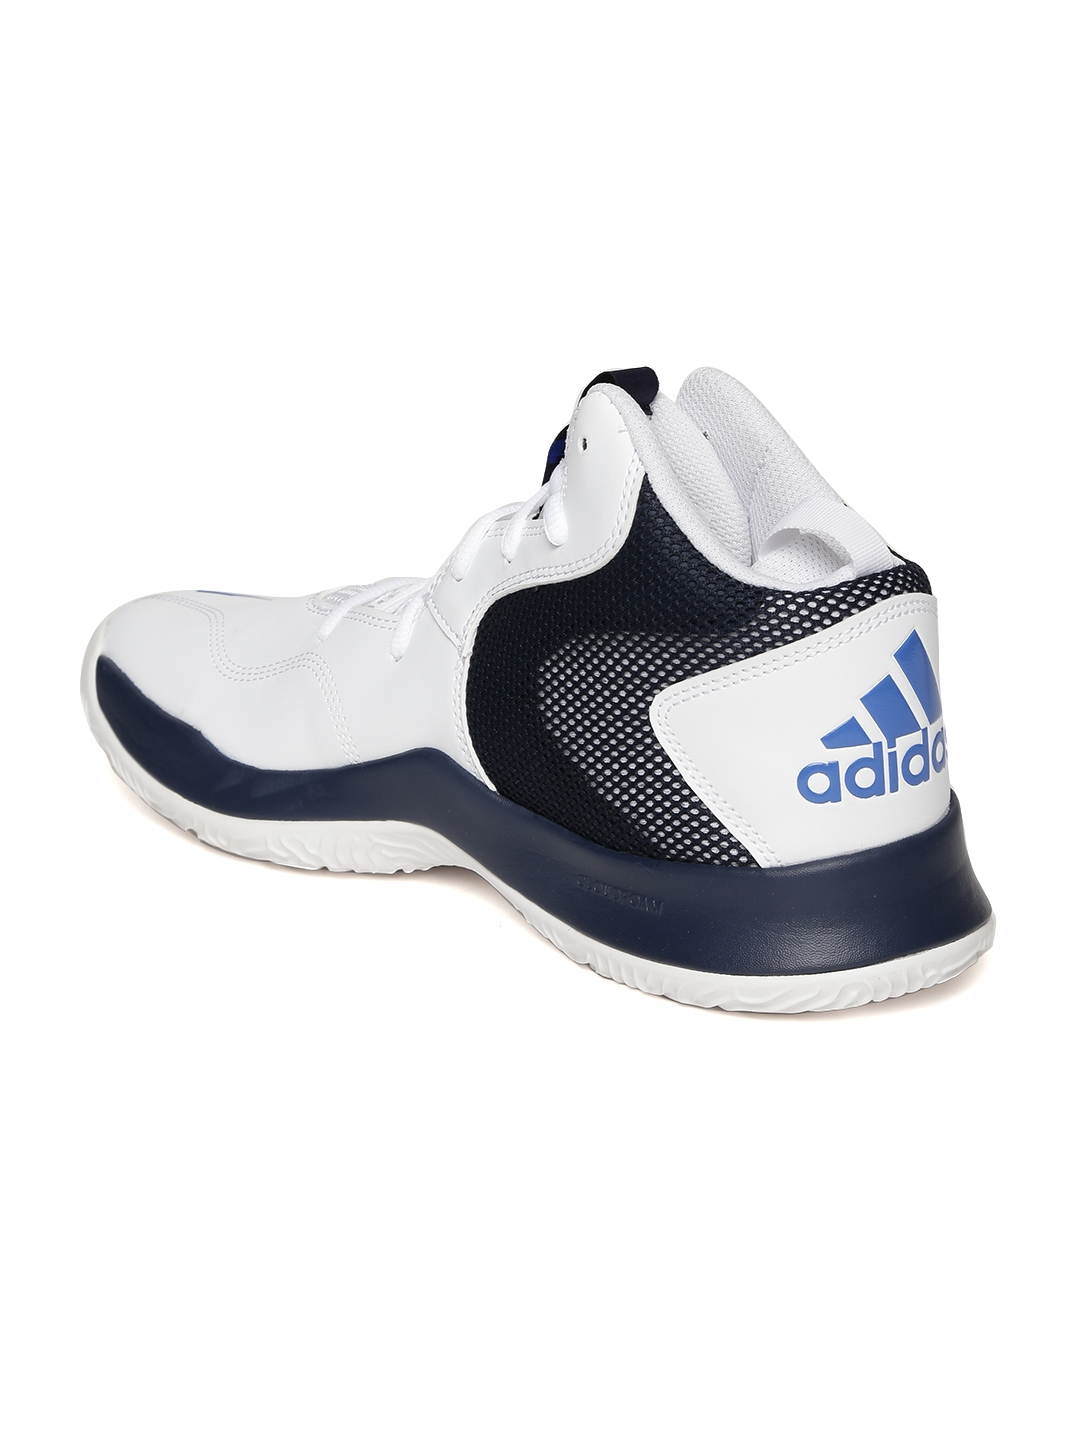 4ca5f20a62c Buy ADIDAS Men White Crazy Team II Basketball Shoes - Sports Shoes ...